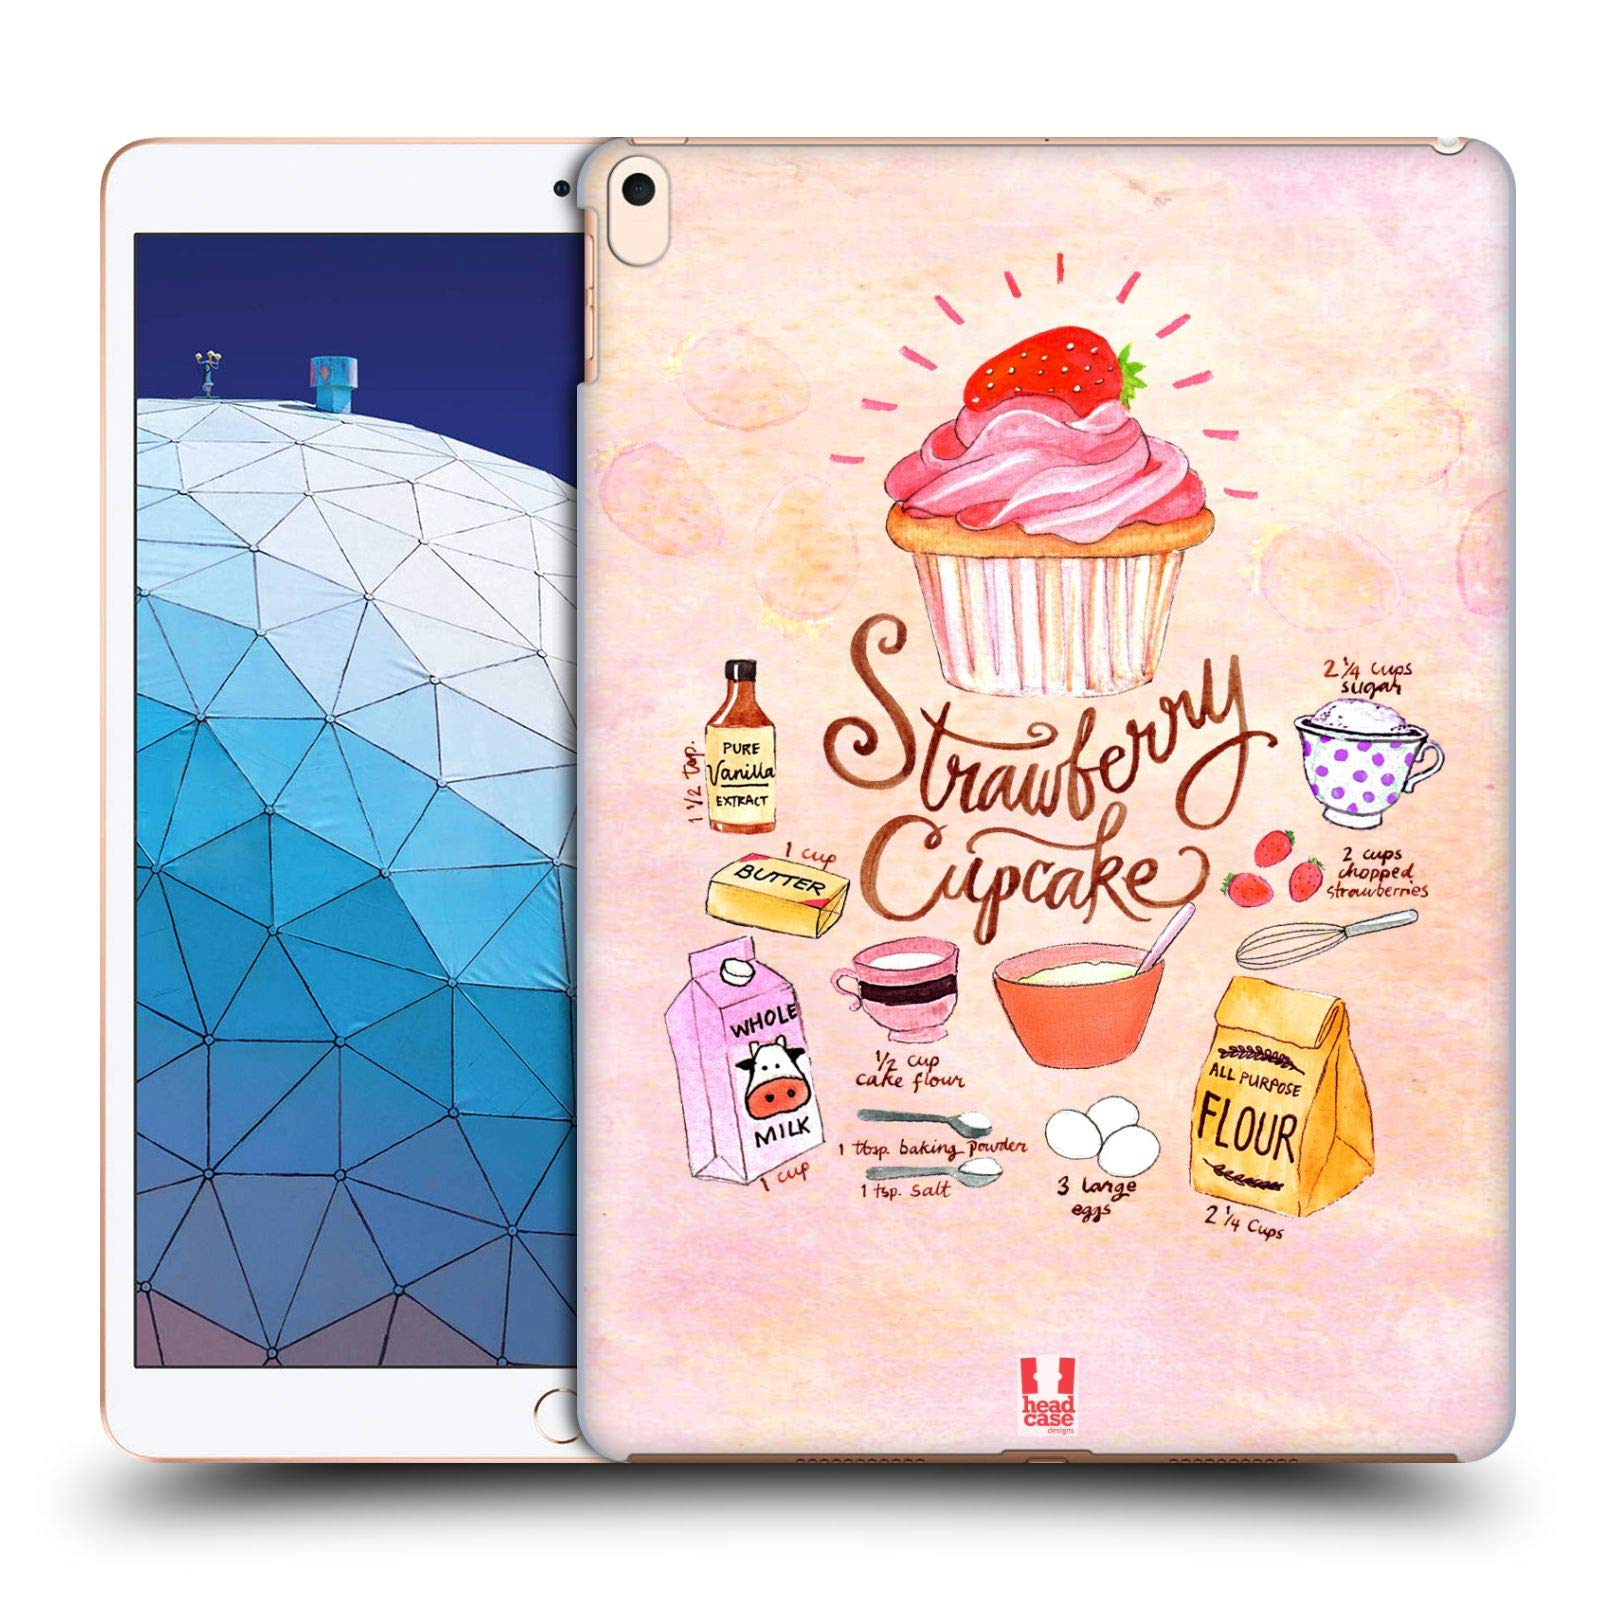 Head Case Designs Strawberry Cupcake Illustrated Recipes Hard Back Case Compatible for iPad Air (2019) by Head Case Designs